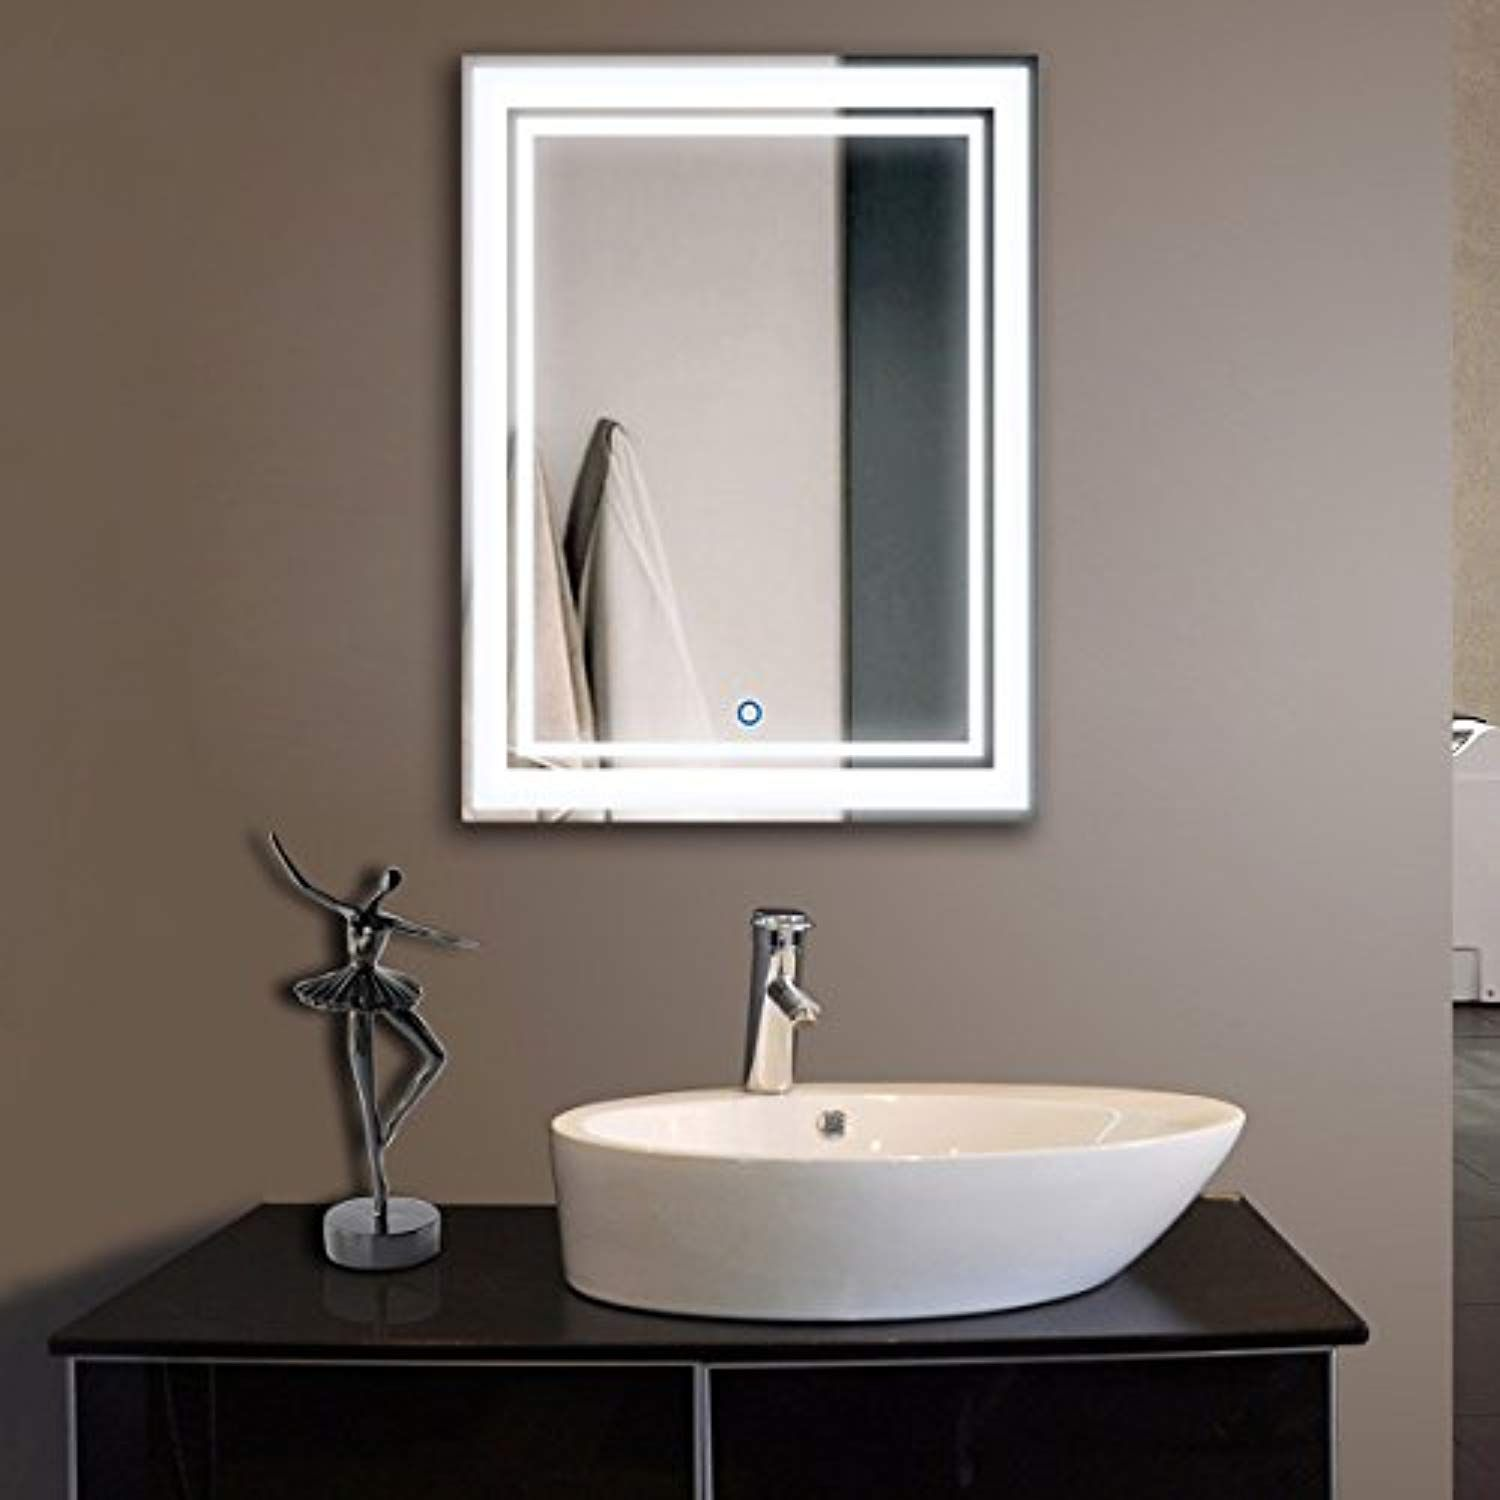 Vertical Led Lighted Vanity Bathroom Silvered Mirror With Touch Button Make Up Mirror Wall Bar Led Mirror Bathroom Purple Bathroom Decor Mirror Wall Bathroom